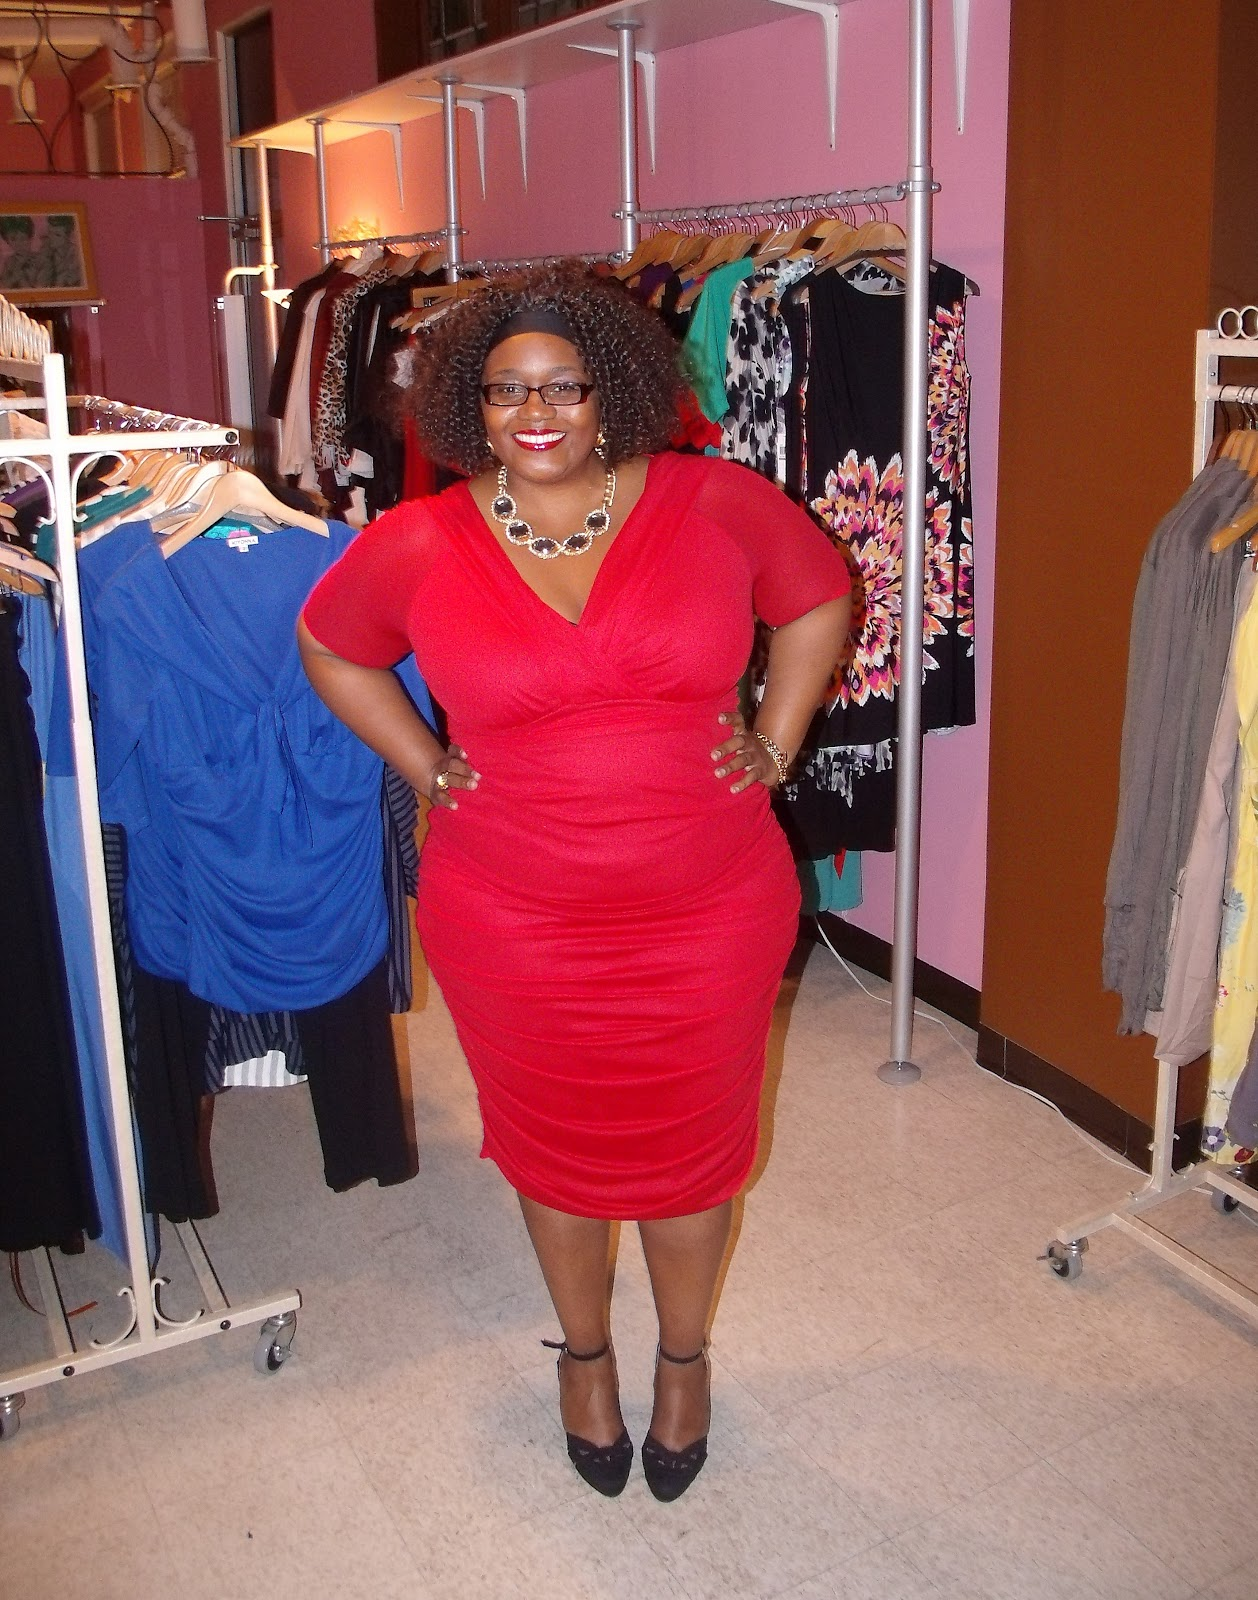 005424633b1 Plus Size Shopping Archives • Page 11 of 16 • Curvatude